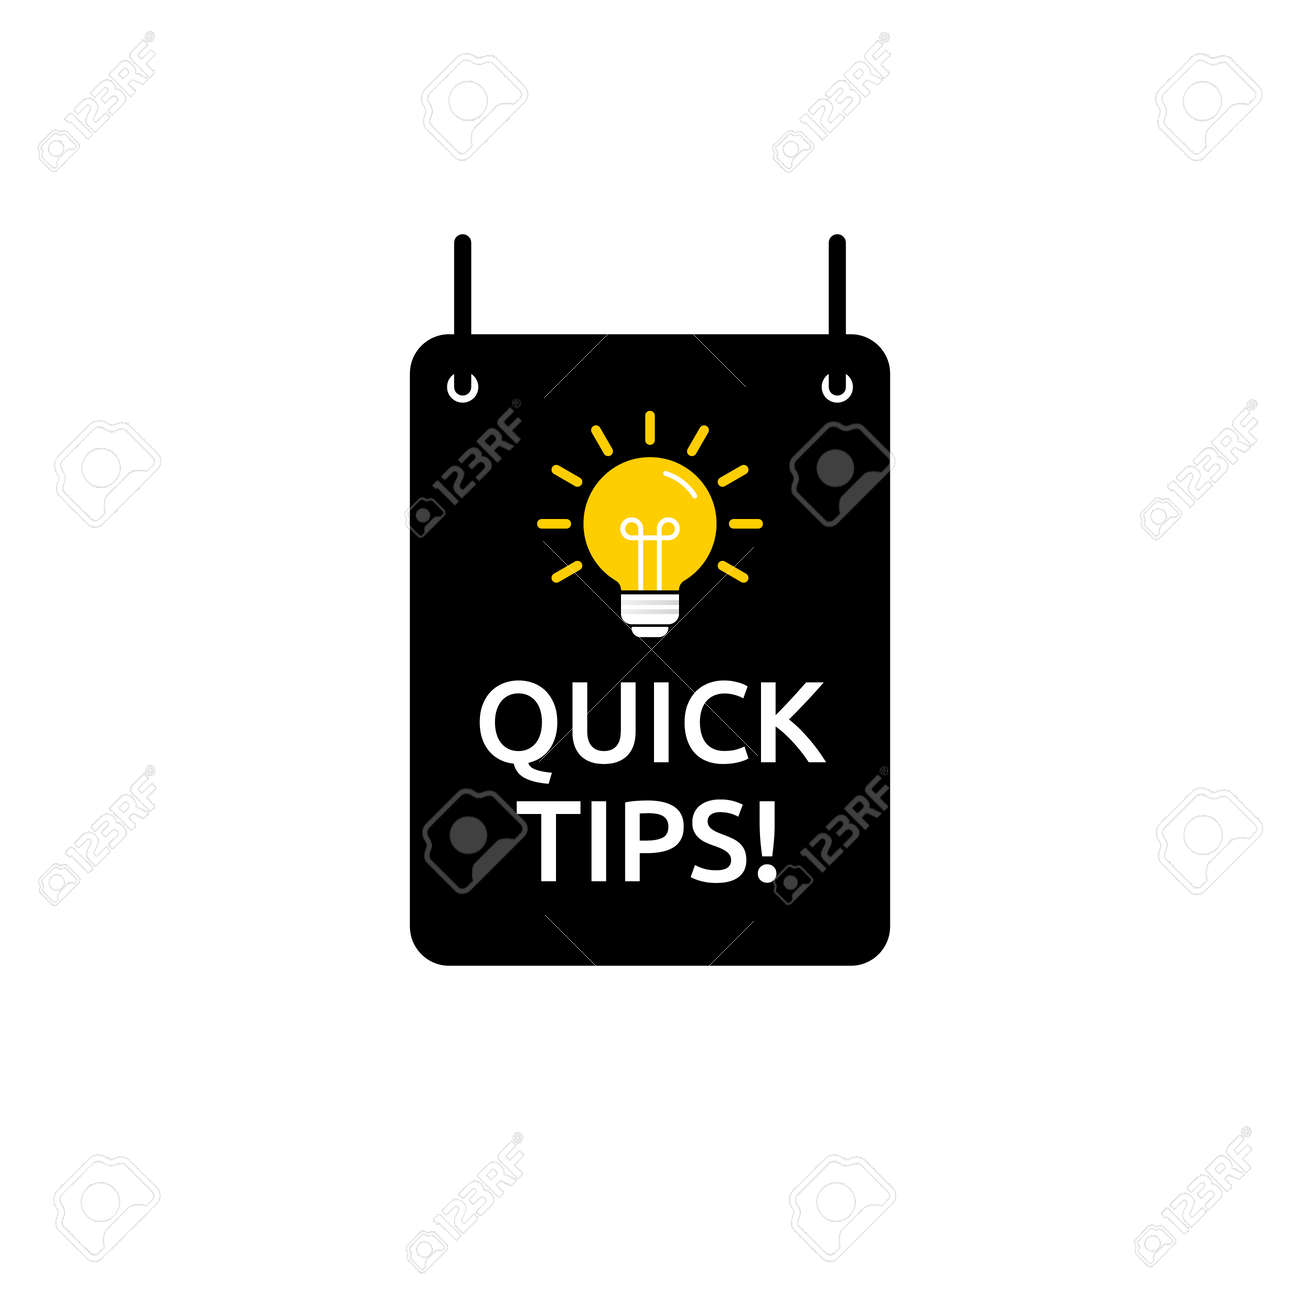 Quick tips, helpful tricks vector icon or symbol set with black and yellow color and light bulb element suitable for web. emblems and banners vector set isolated - 162382301